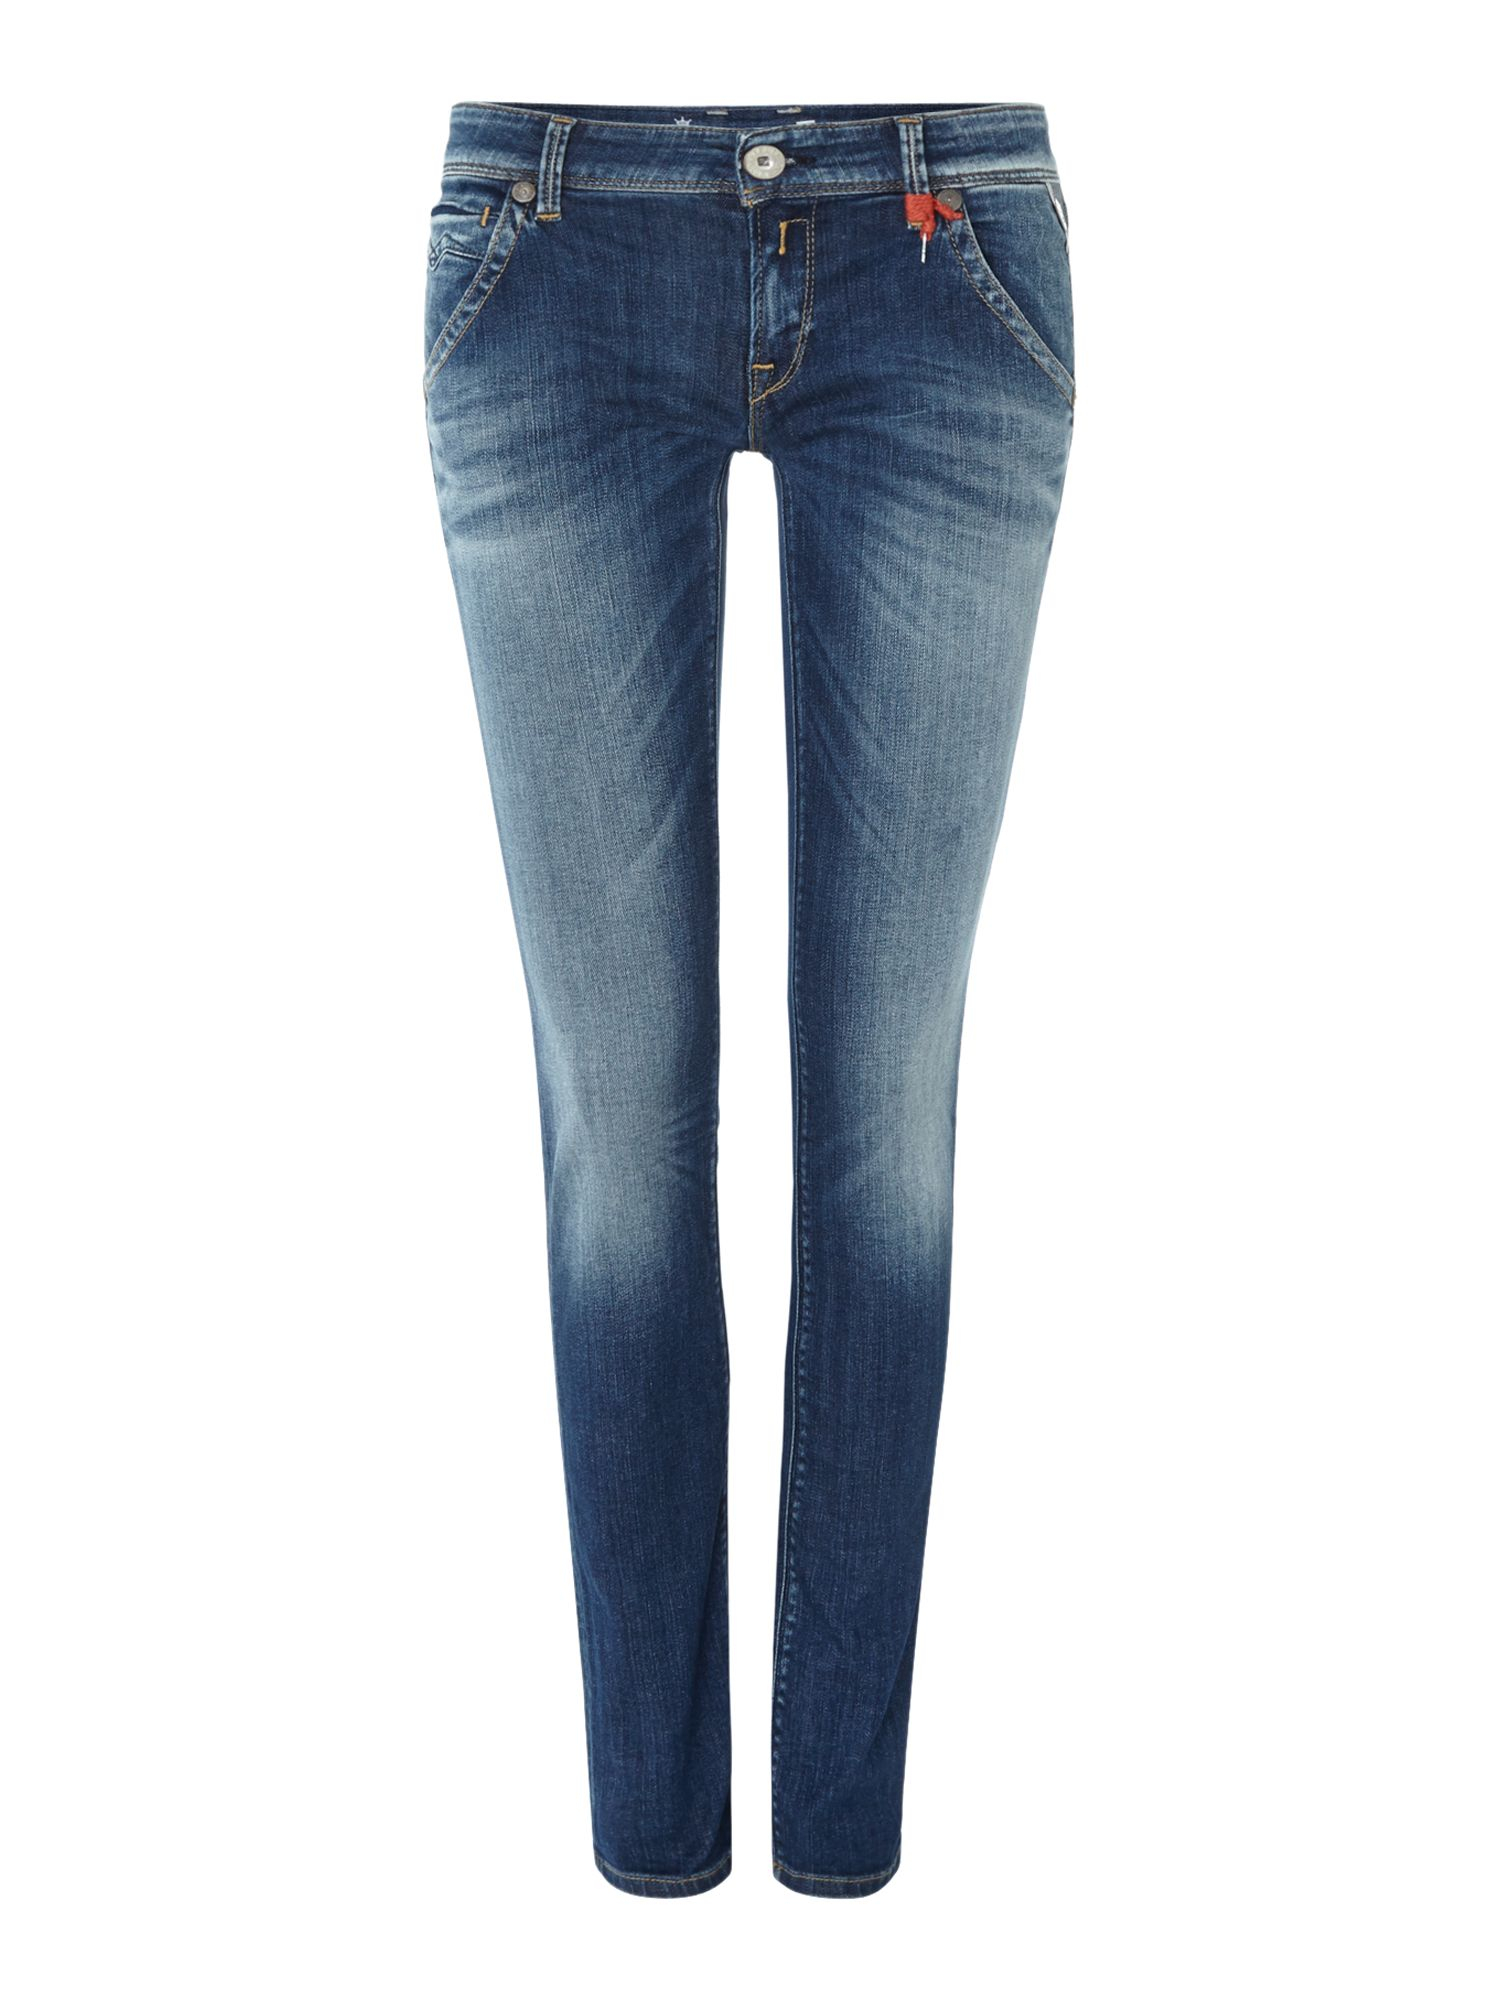 Replay skinny jeans suzanne